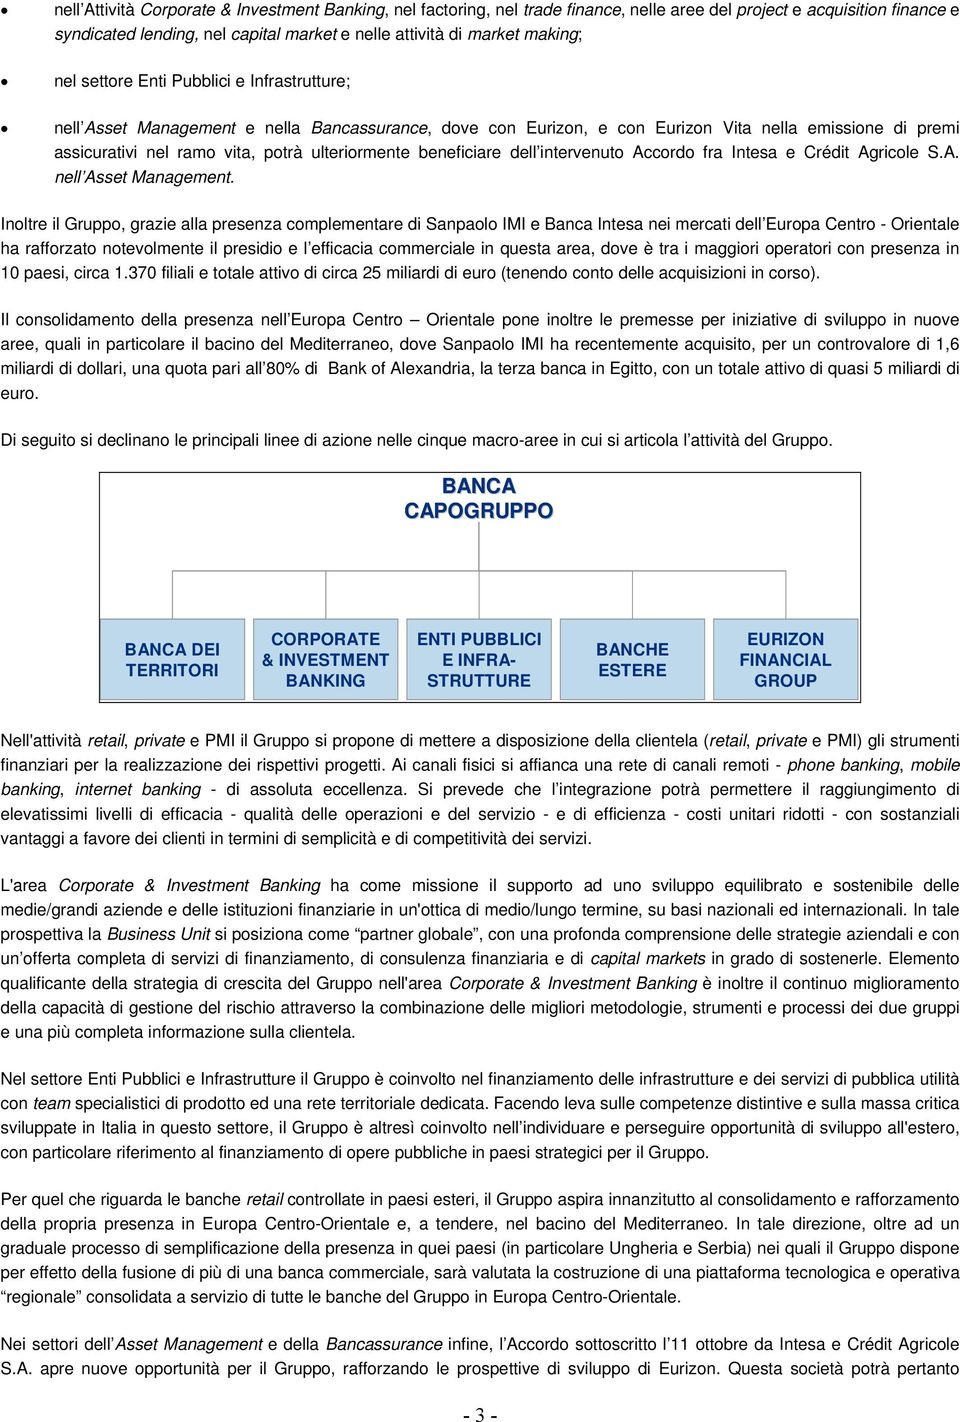 ulteriormente beneficiare dell intervenuto Accordo fra Intesa e Crédit Agricole S.A. nell Asset Management.